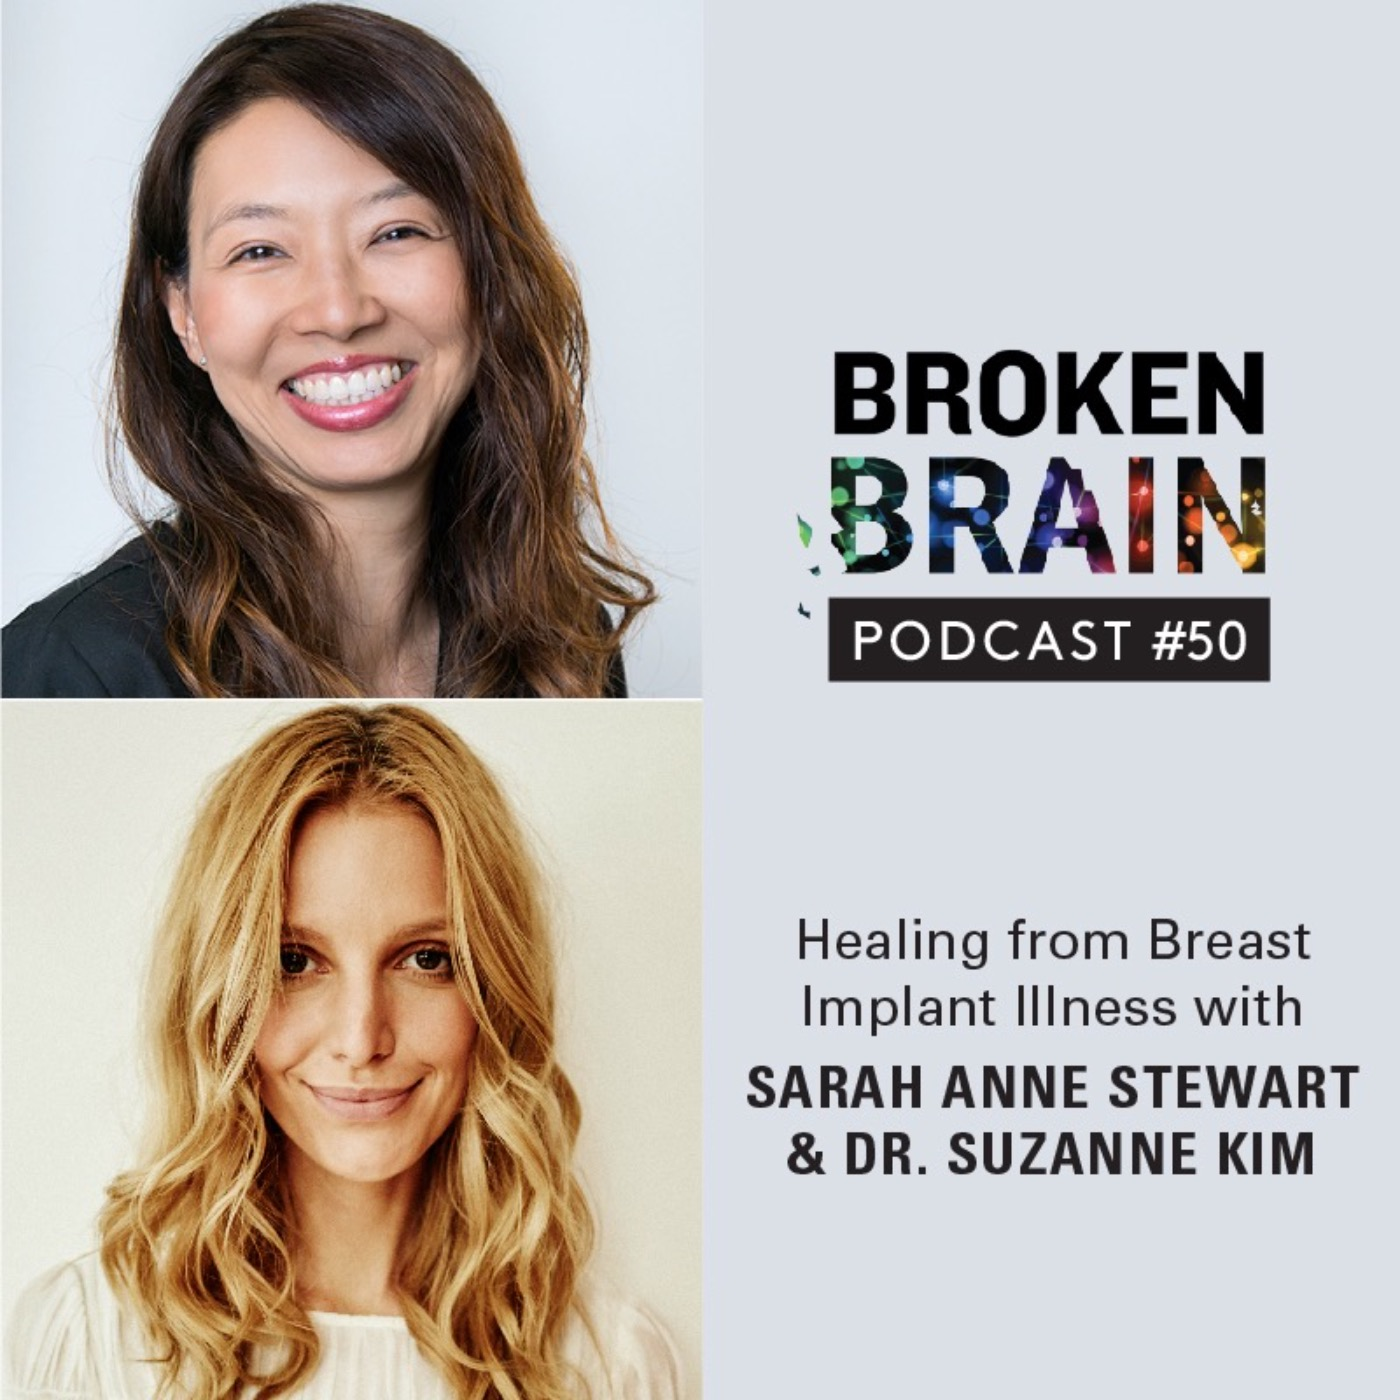 #50: Healing from Breast Implant Illness with Sarah Anne Stewart and Dr. Suzanne Kim